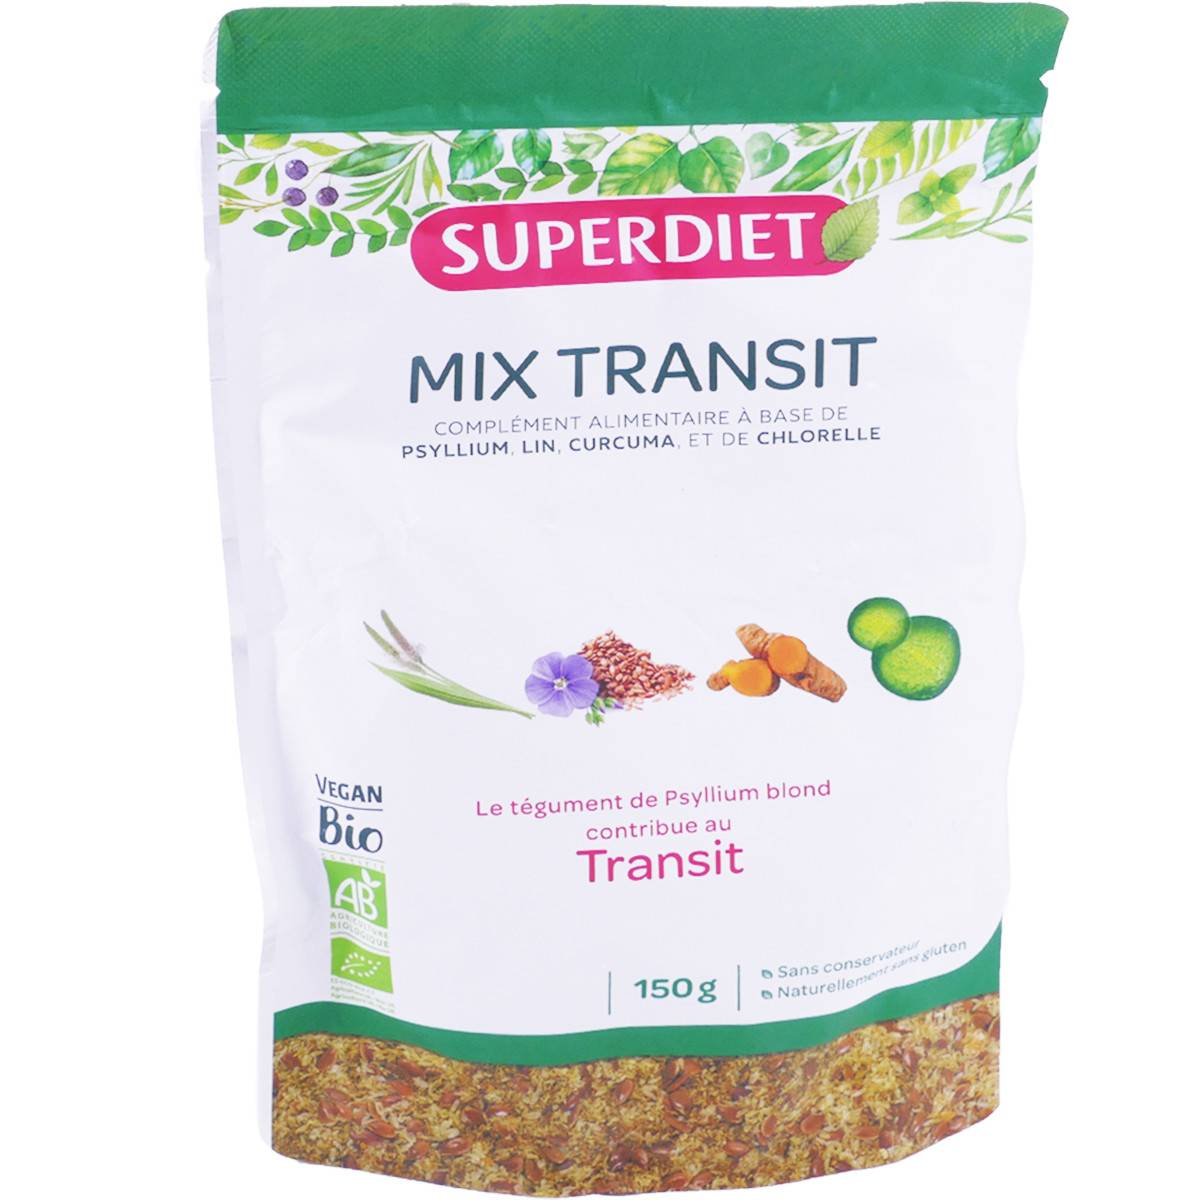 SUPER DIET Superdiet mix transit 150g bio